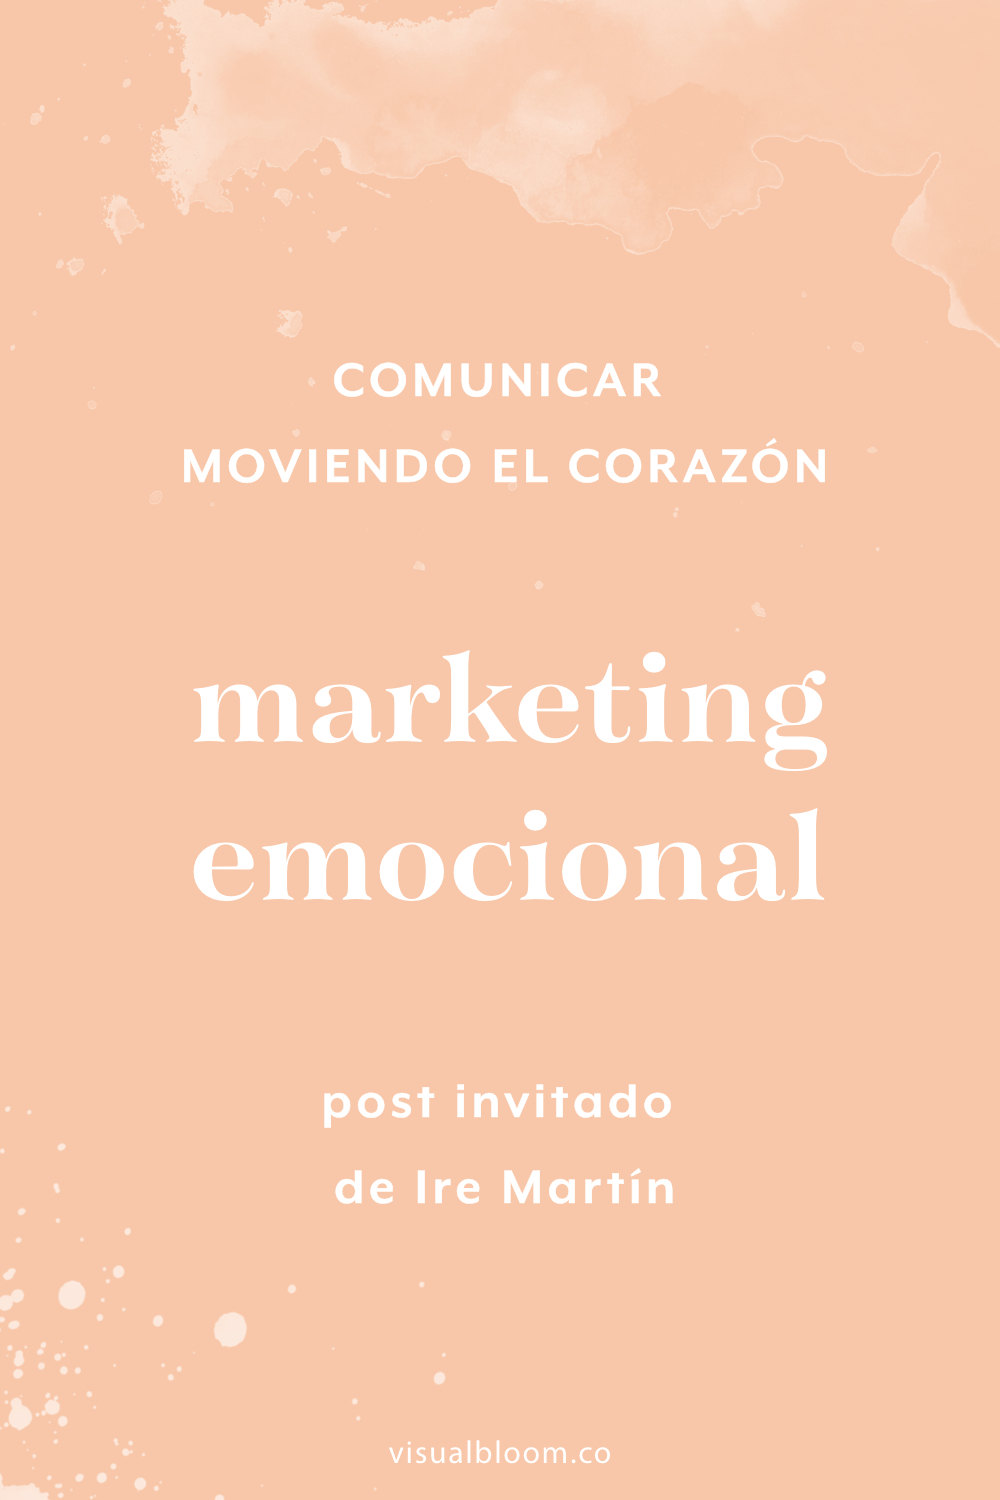 Comunicar moviendo el corazón: marketing emocional. #Marketing #NegocioOnline #Emprendimiento #MarcaPersonal